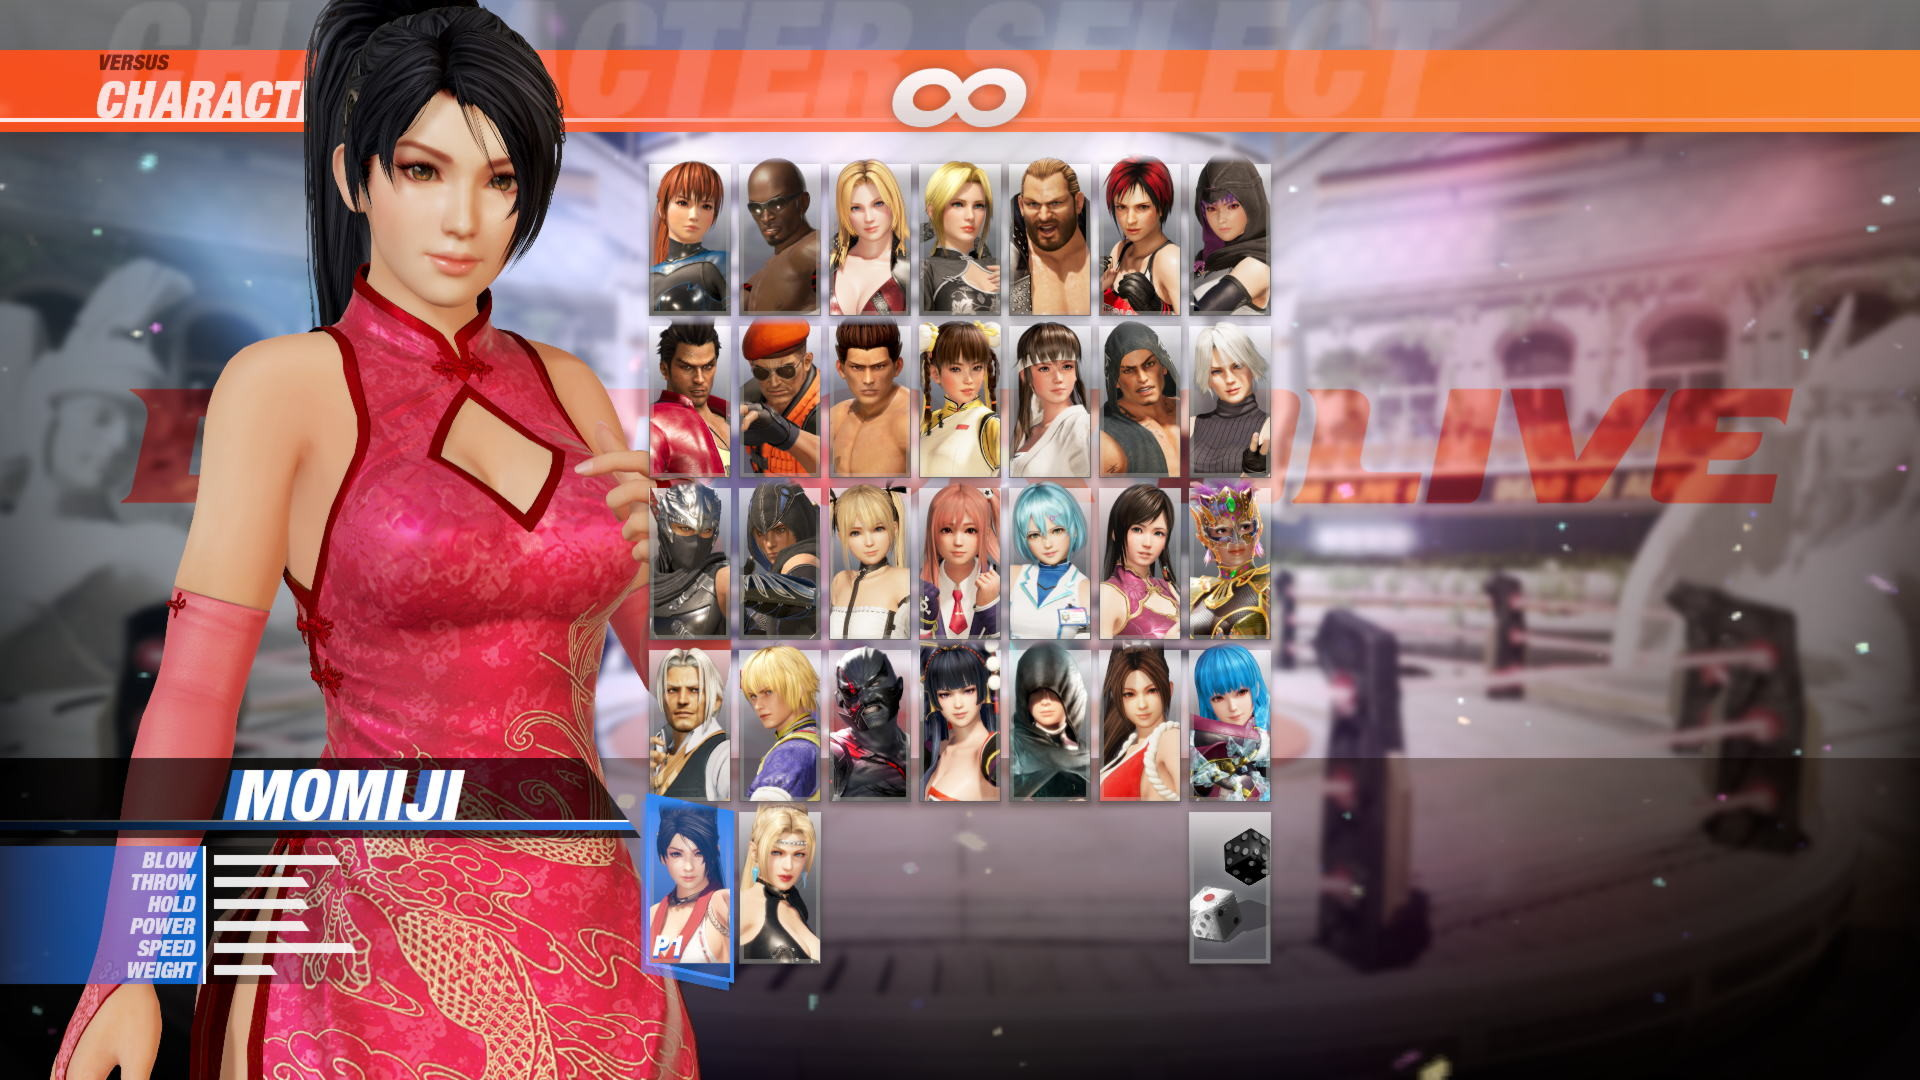 [Revival] DOA6 Alluring Mandarin Dress - Momiji screenshot